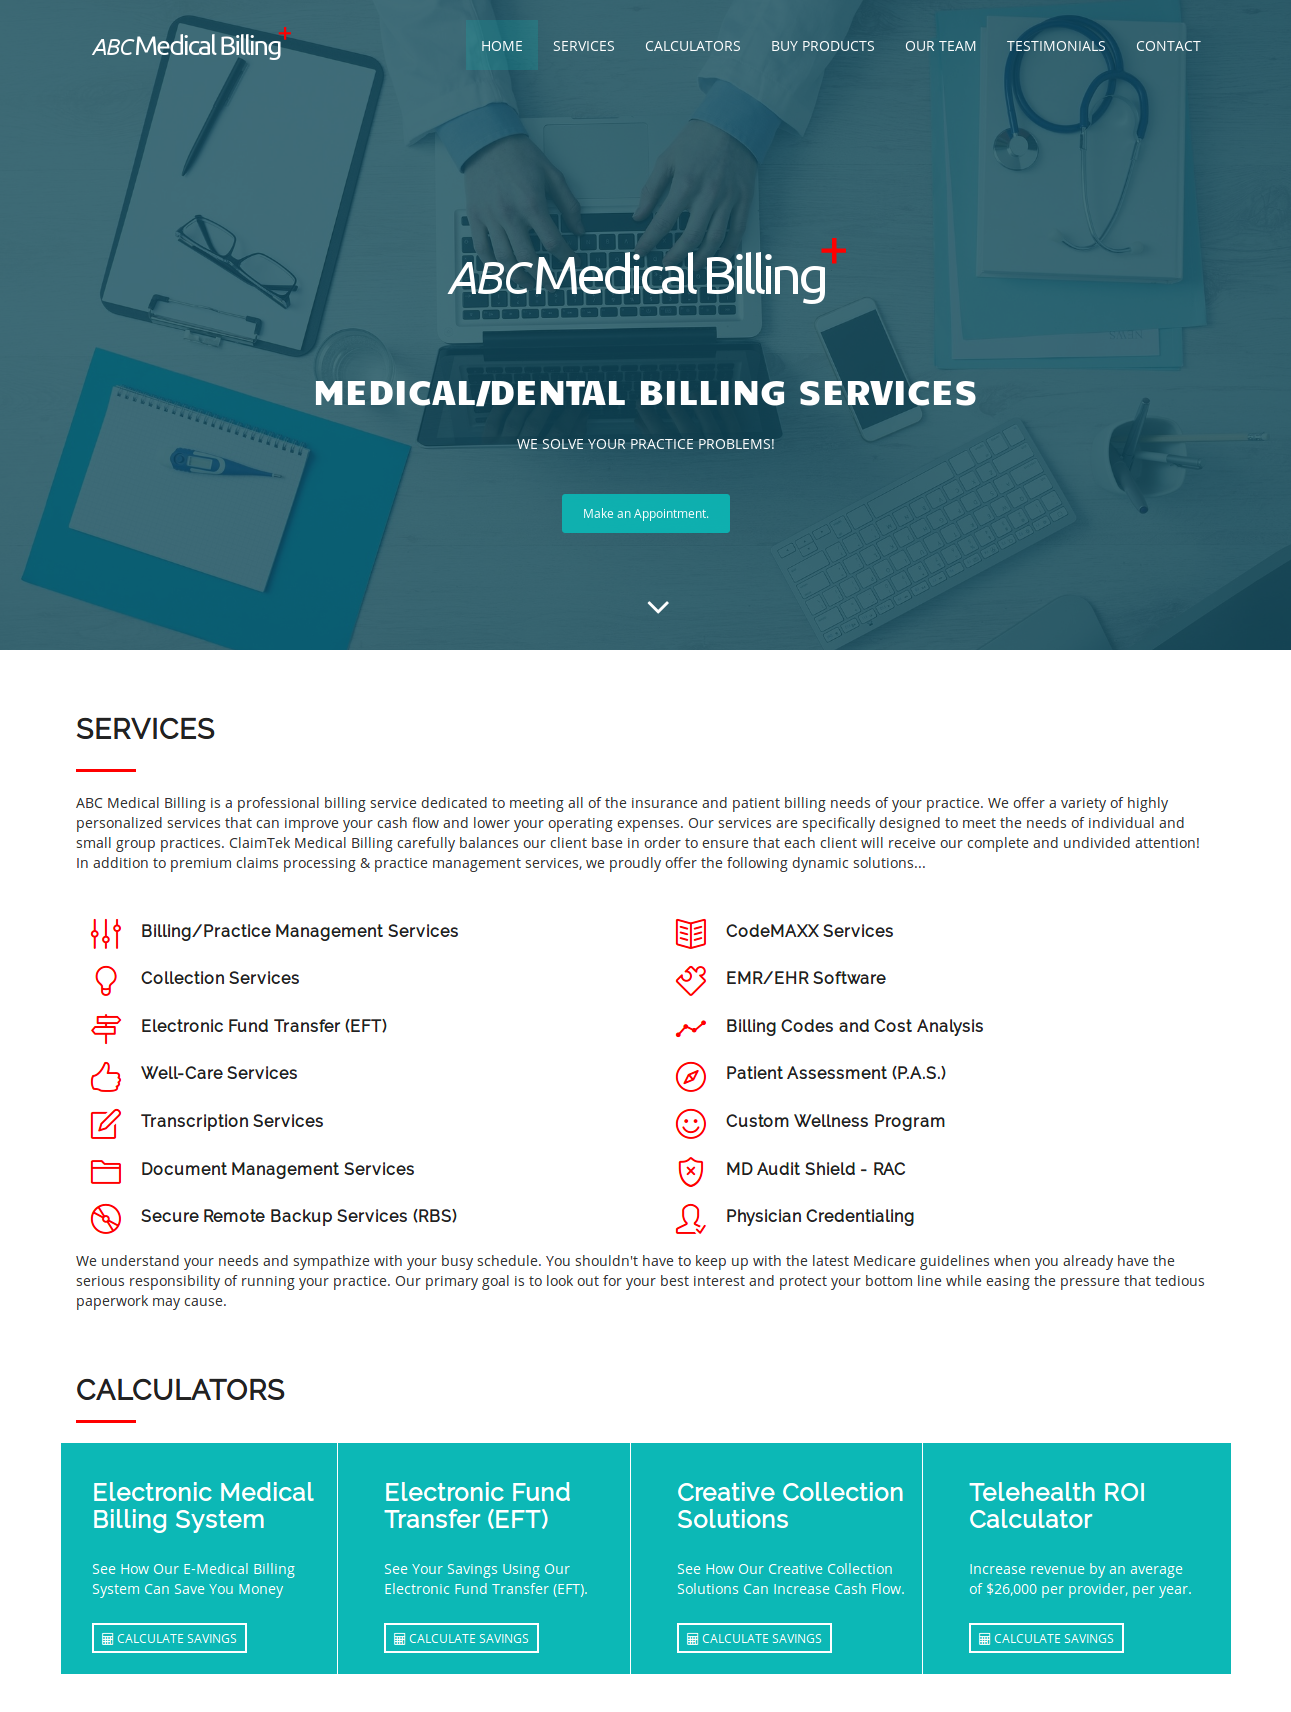 ABC Medical Billing